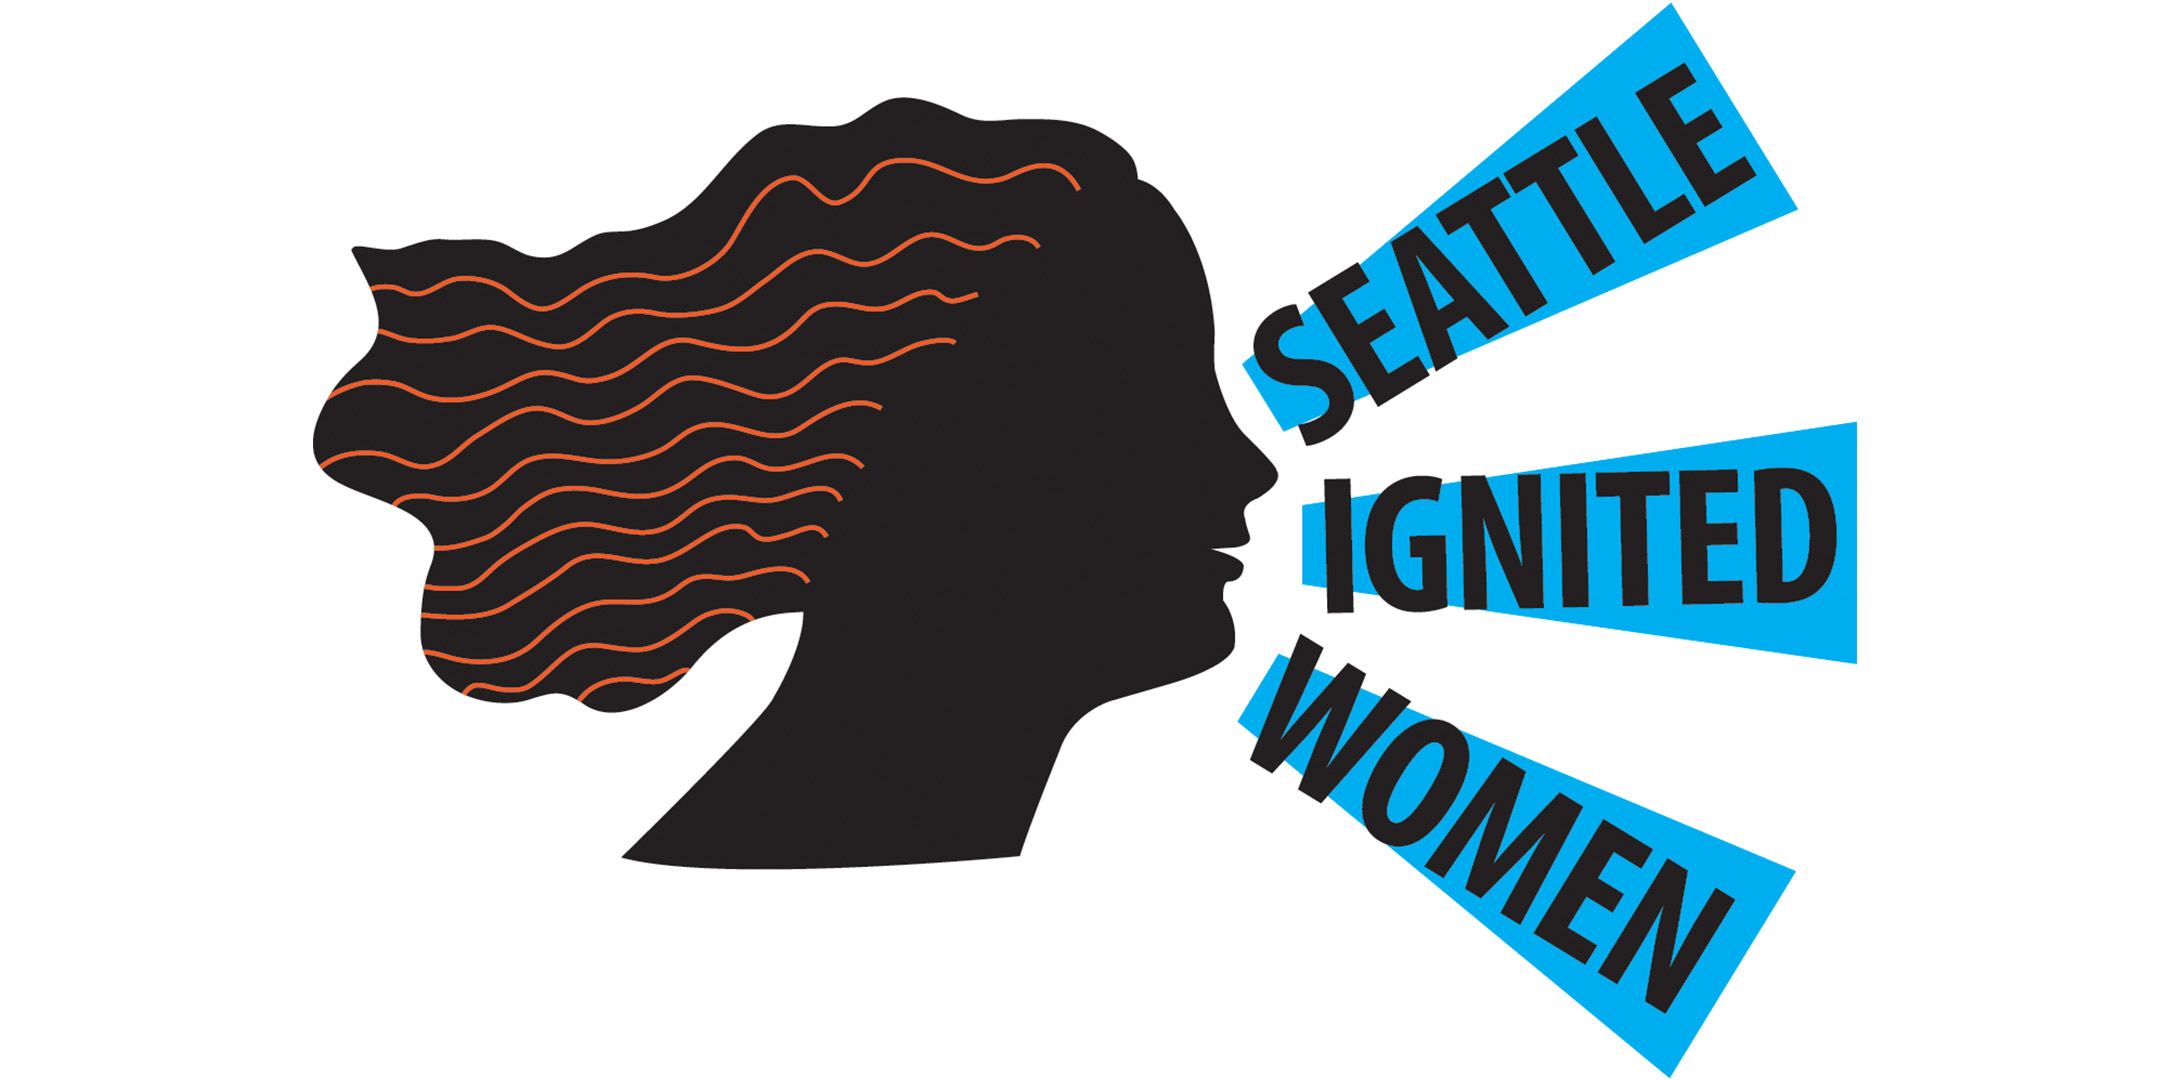 Seattle Ignited Women Project Logo